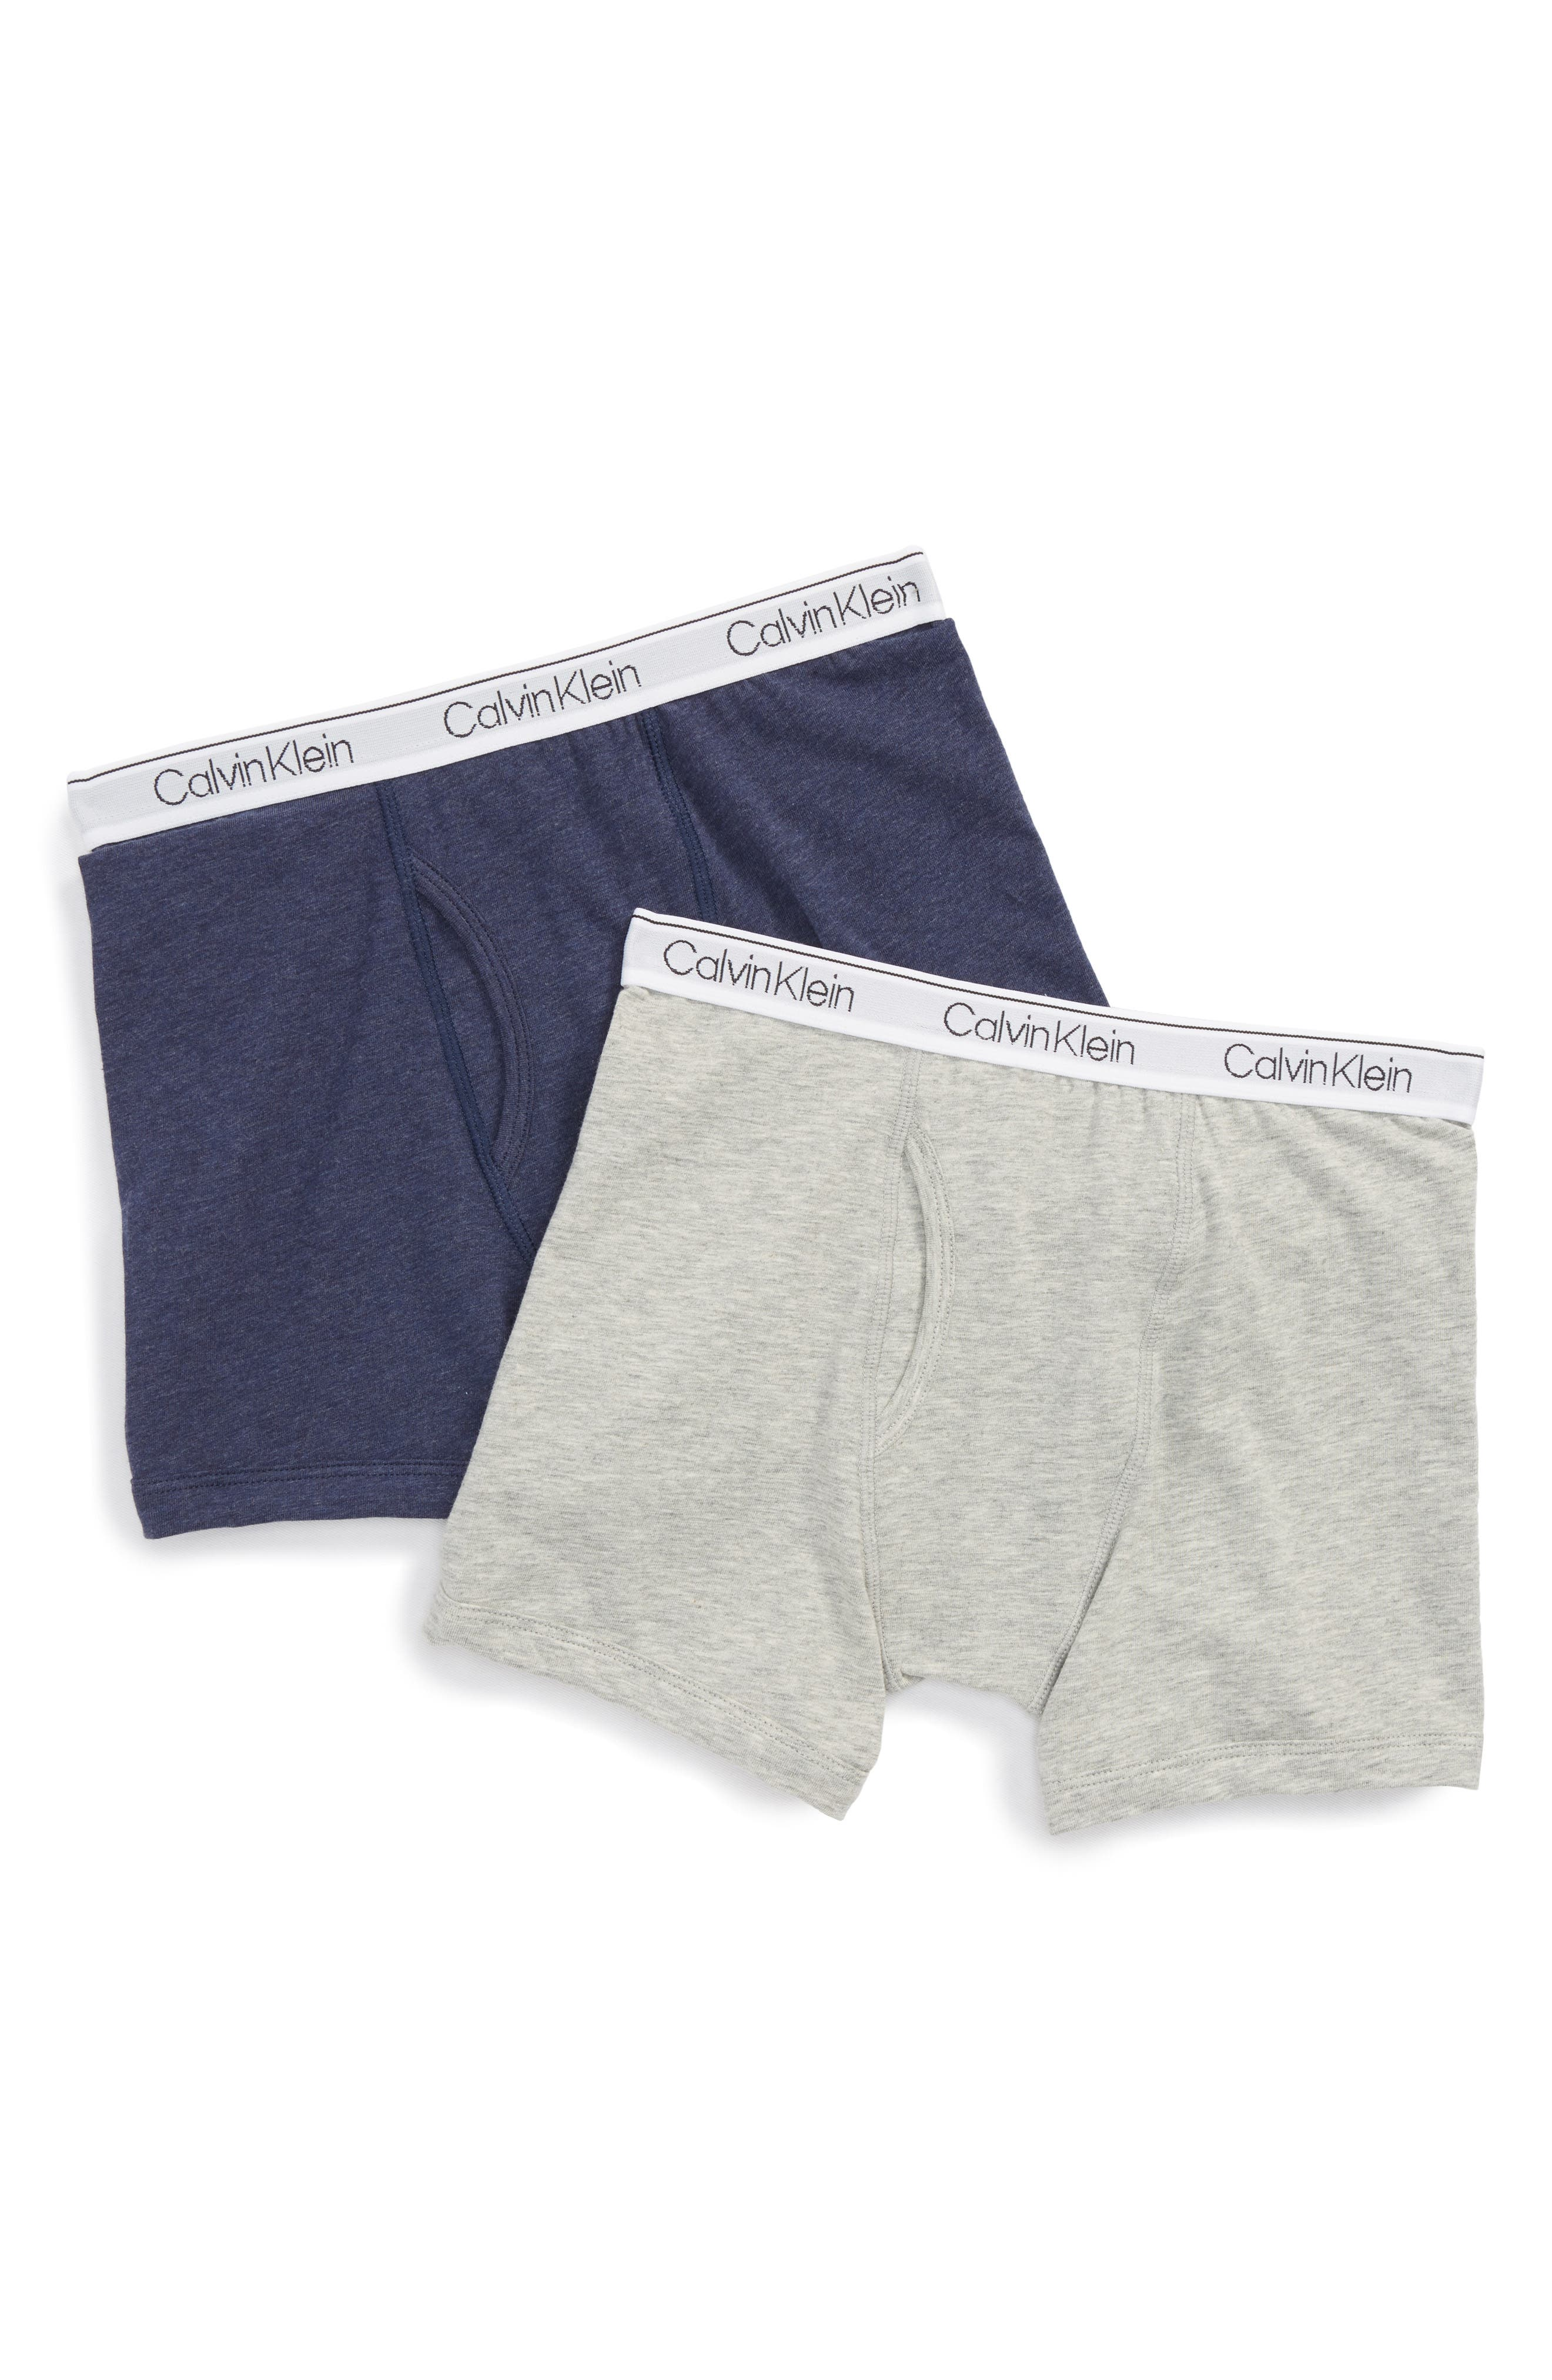 2-Pack Modern Boxer Briefs,                             Main thumbnail 1, color,                             Heather Grey/Heather Blue